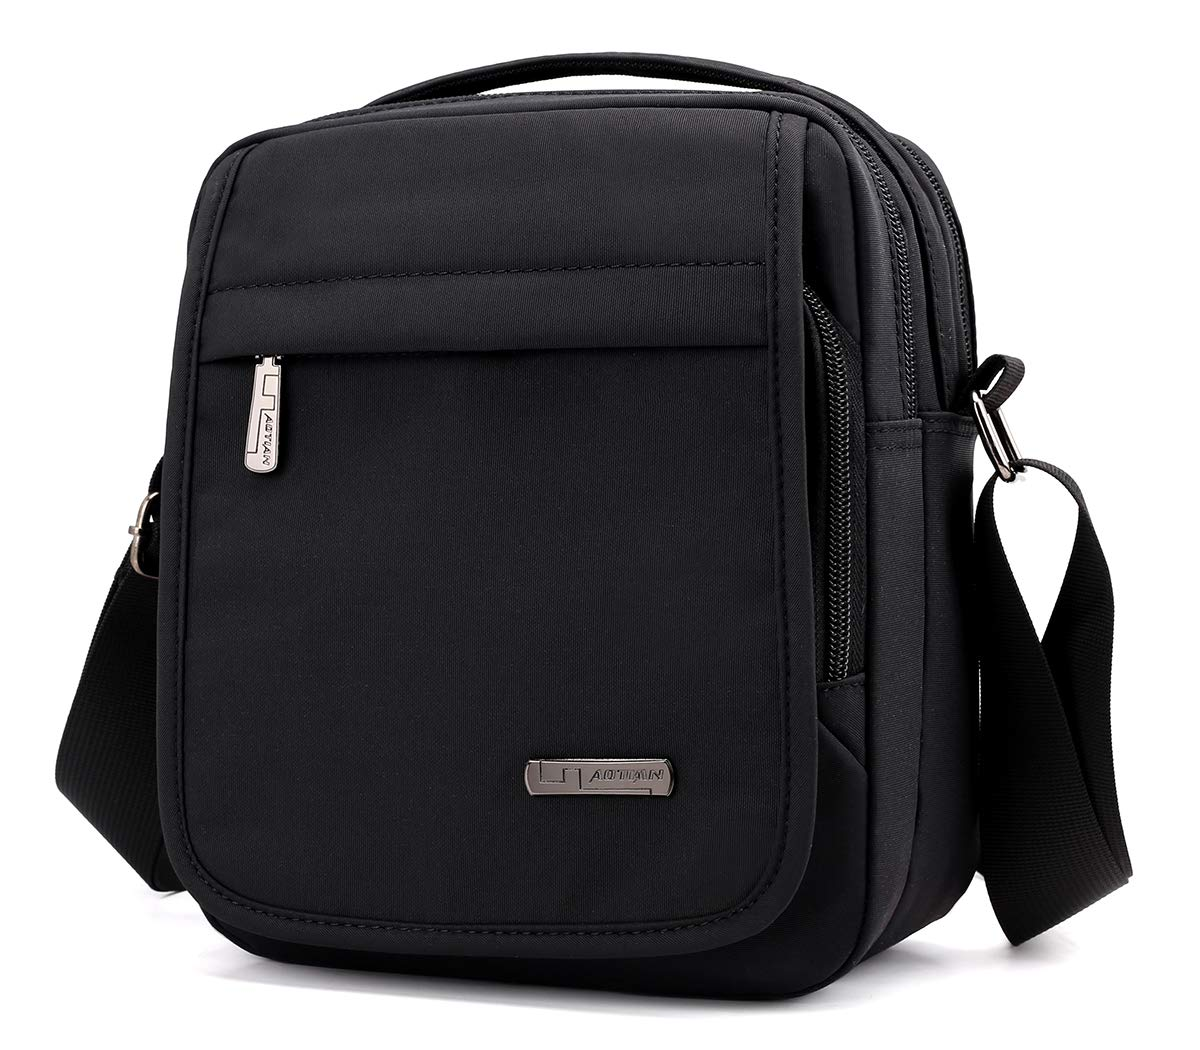 Collsants Small Messenger Bag Nylon Crossbody Bag Multi Travel Shoulder Bag For Men Women (Black)